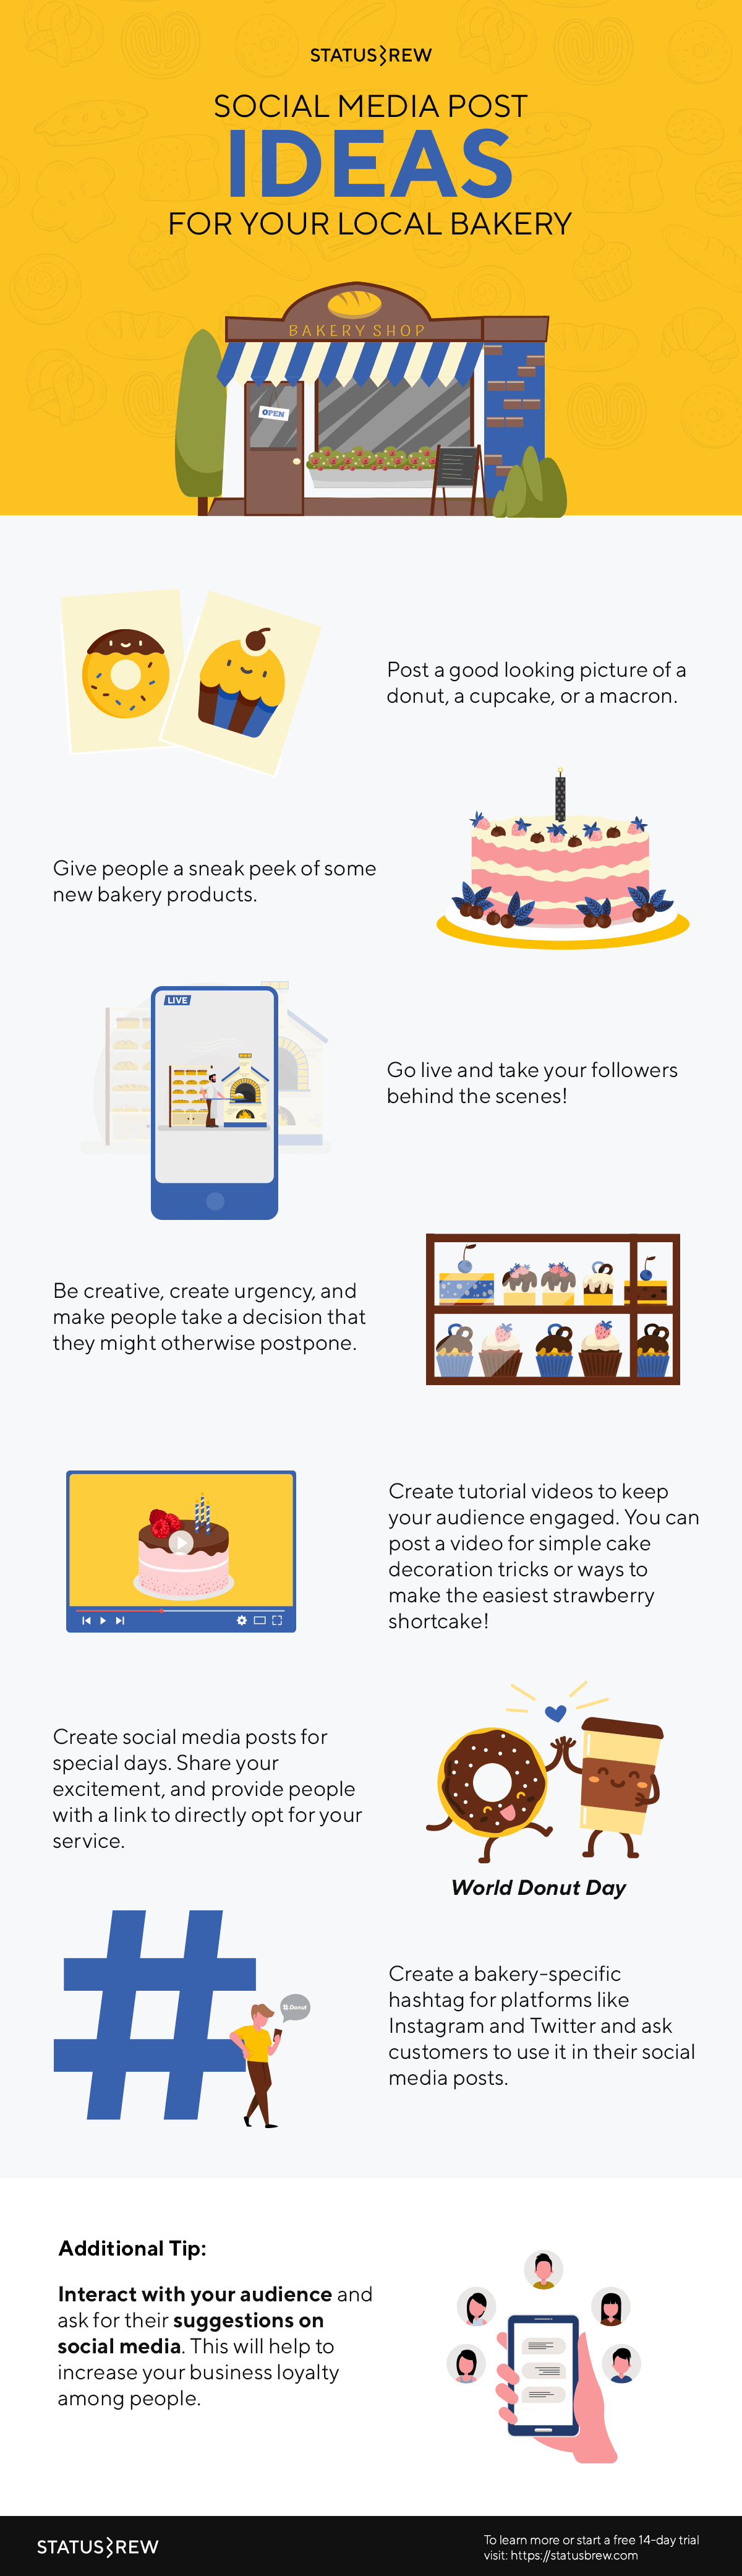 Infographic on social media post ideas